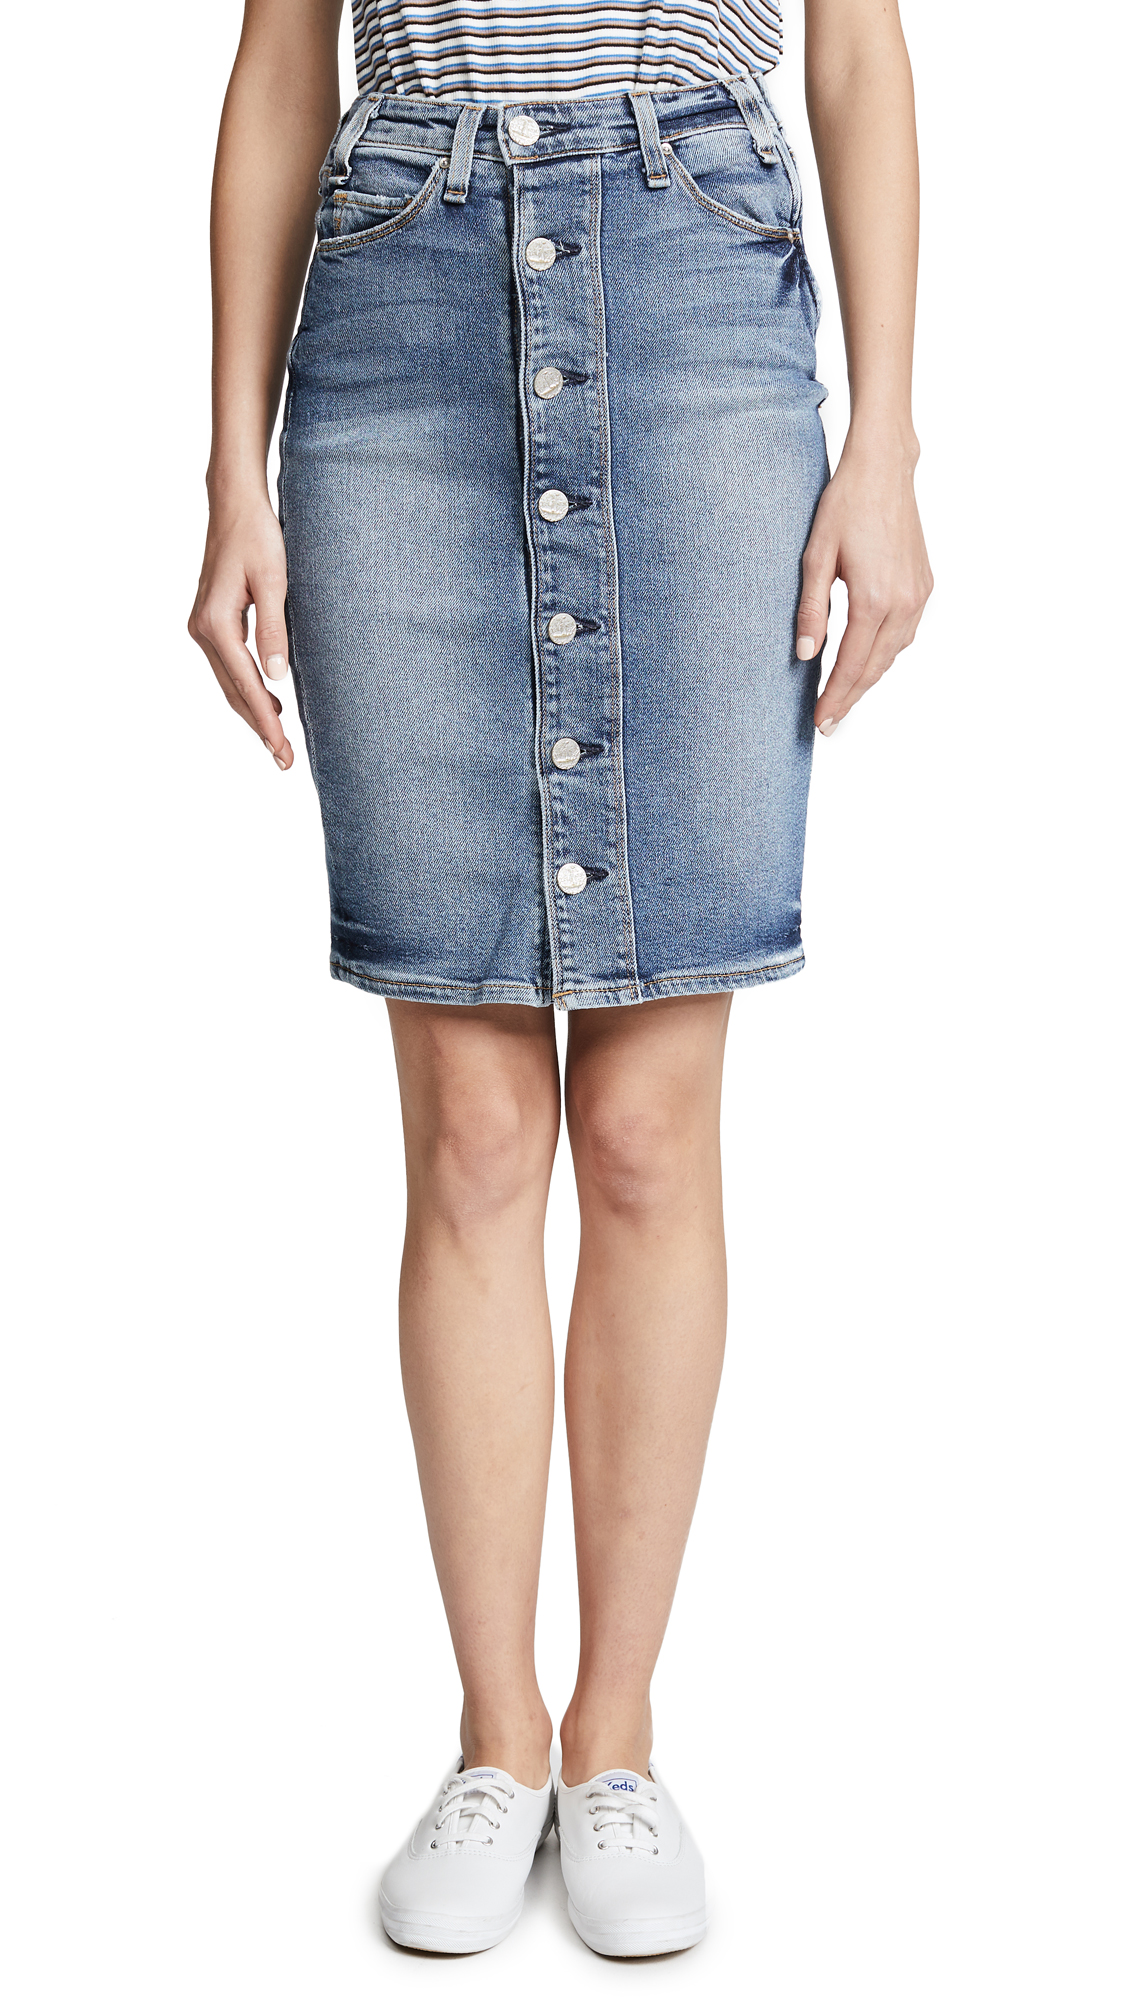 McGuire Denim Cartagena Pencil Skirt In Bolivar